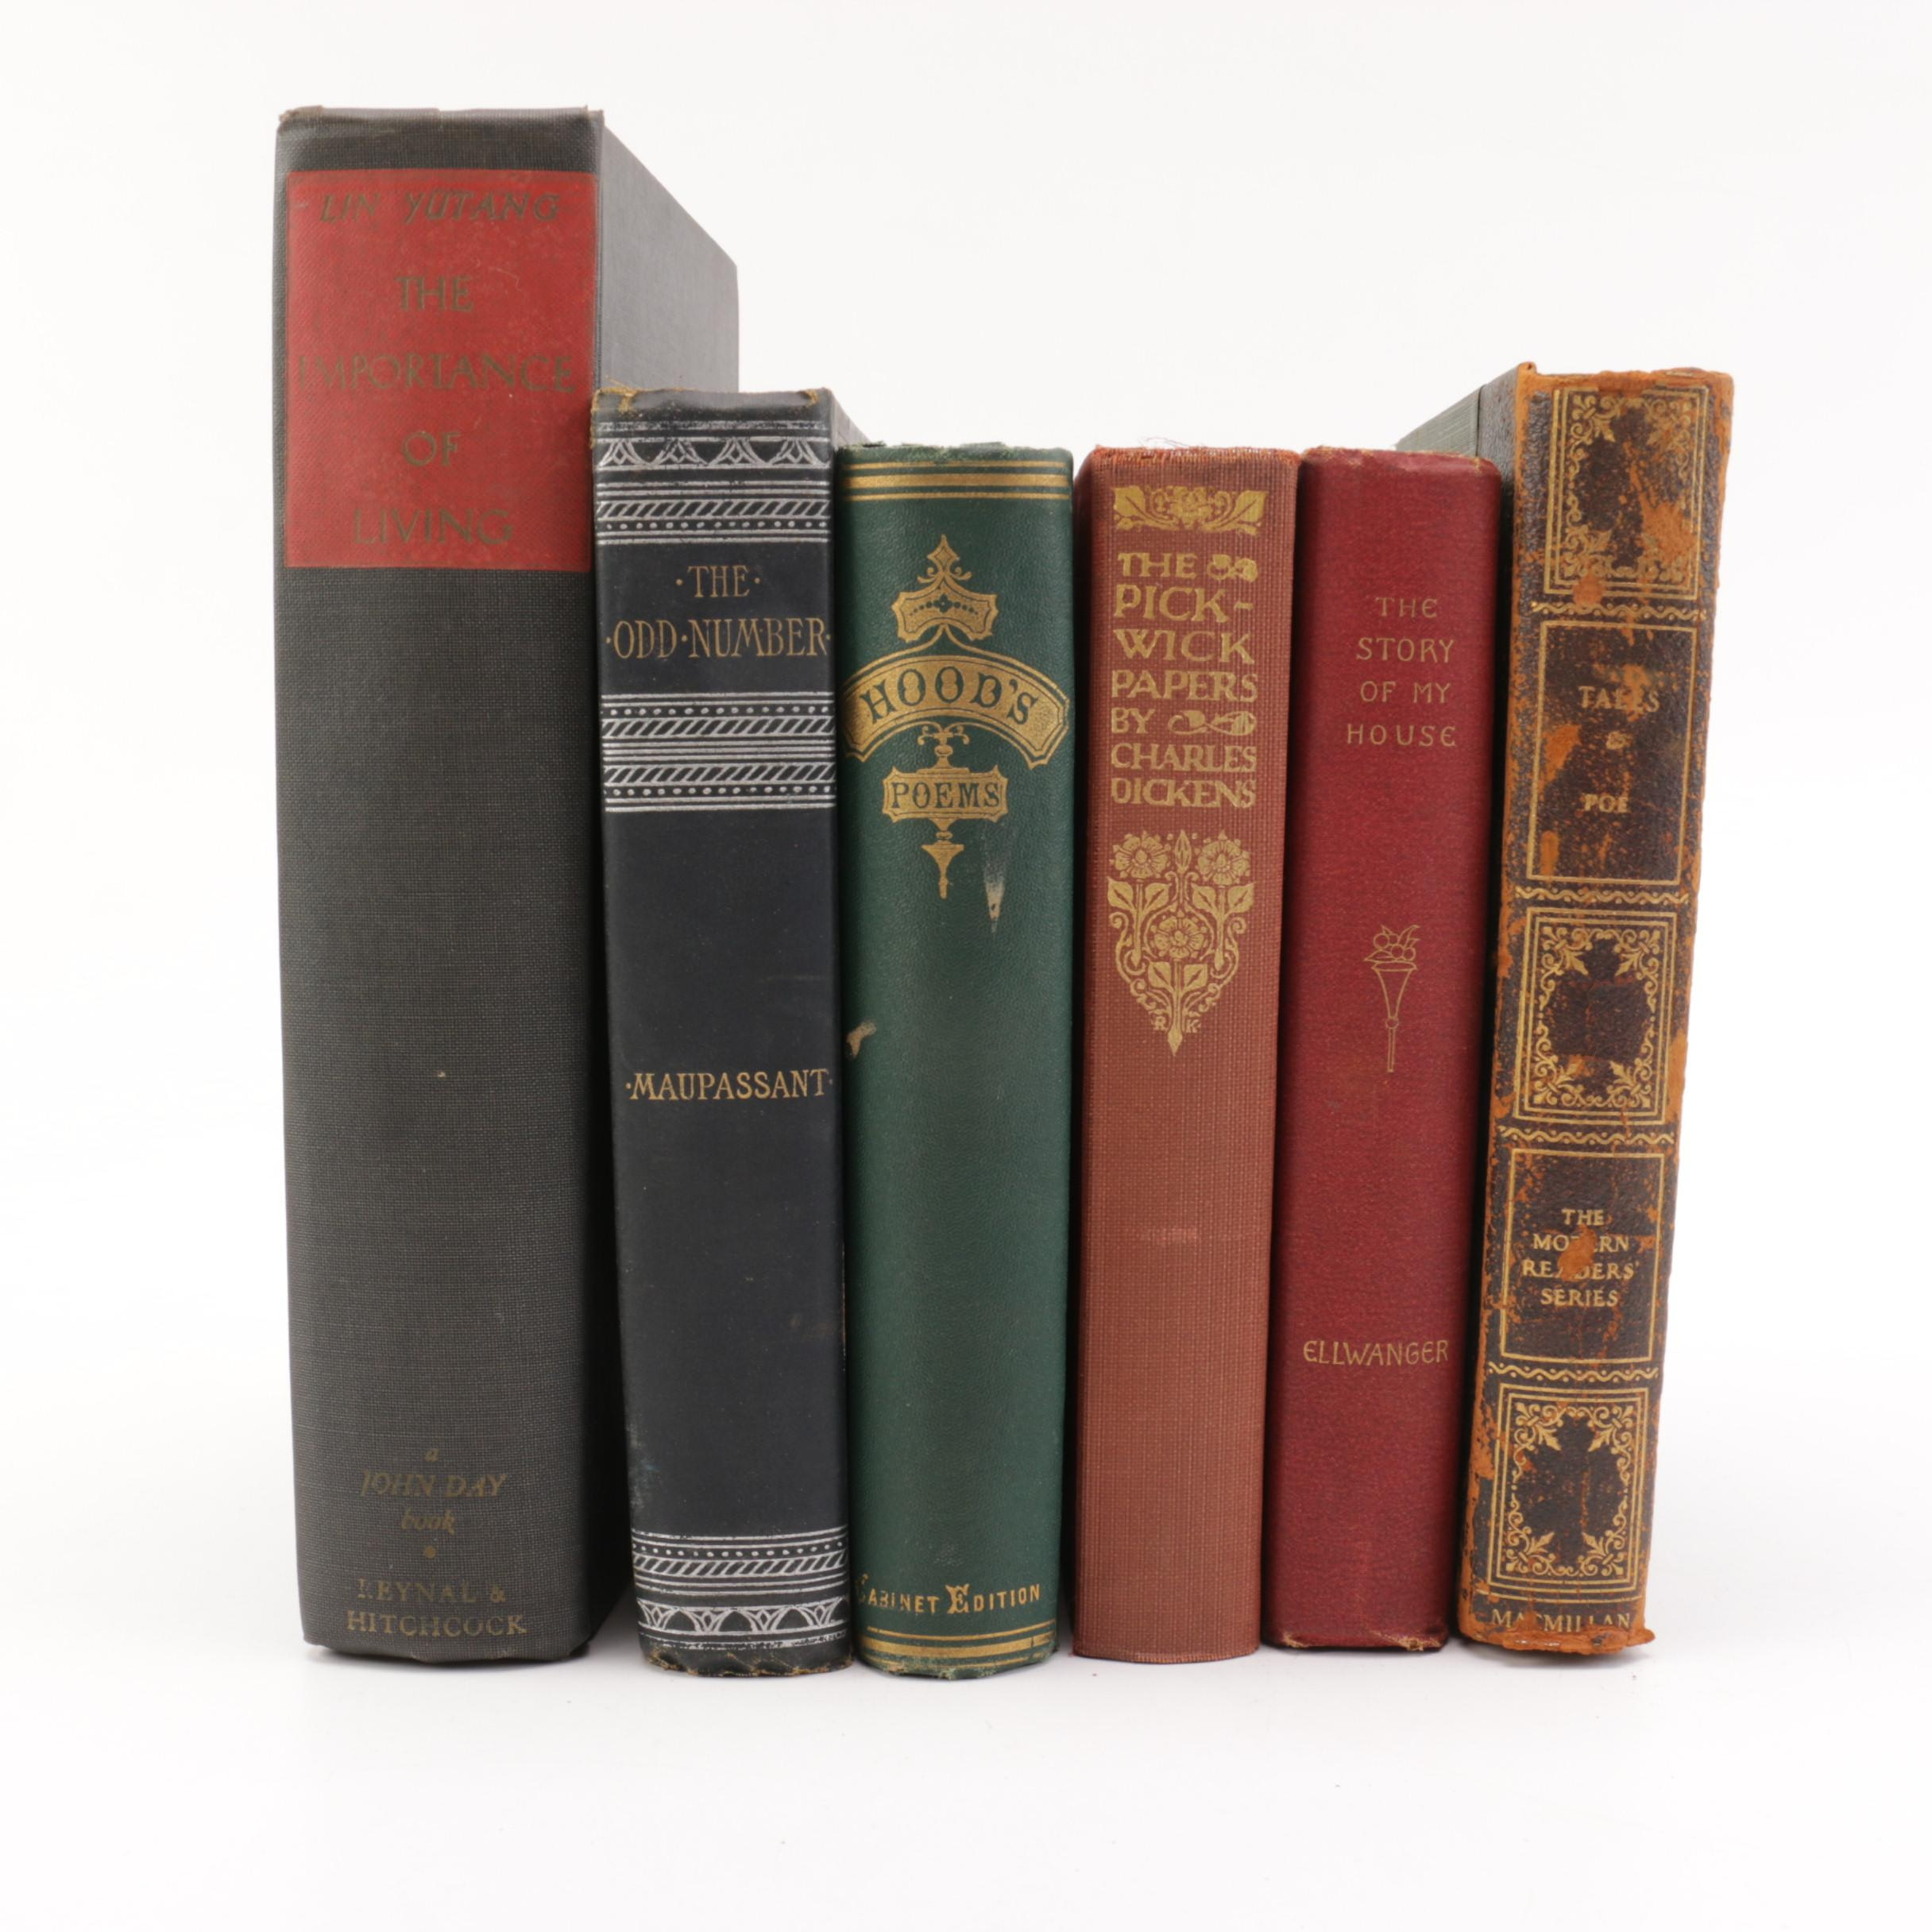 Assorted Antique and Vintage Hardcover Books